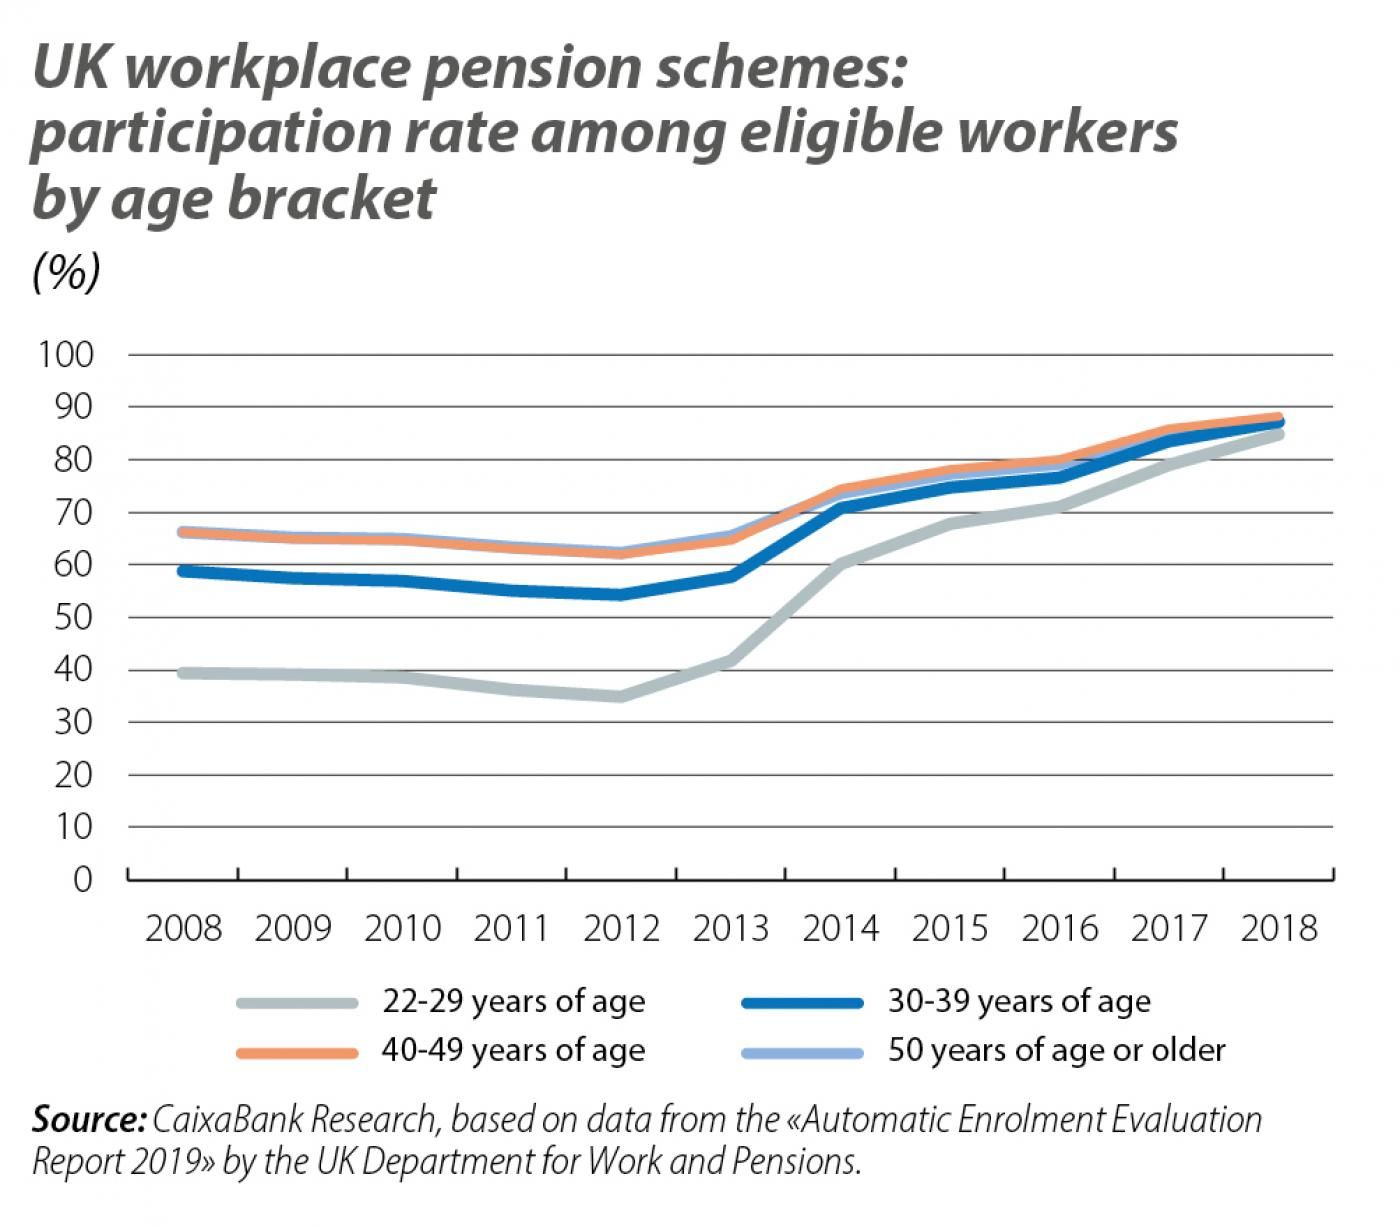 UK workplace pension schemes: participation rate among eligible workers by age bracket